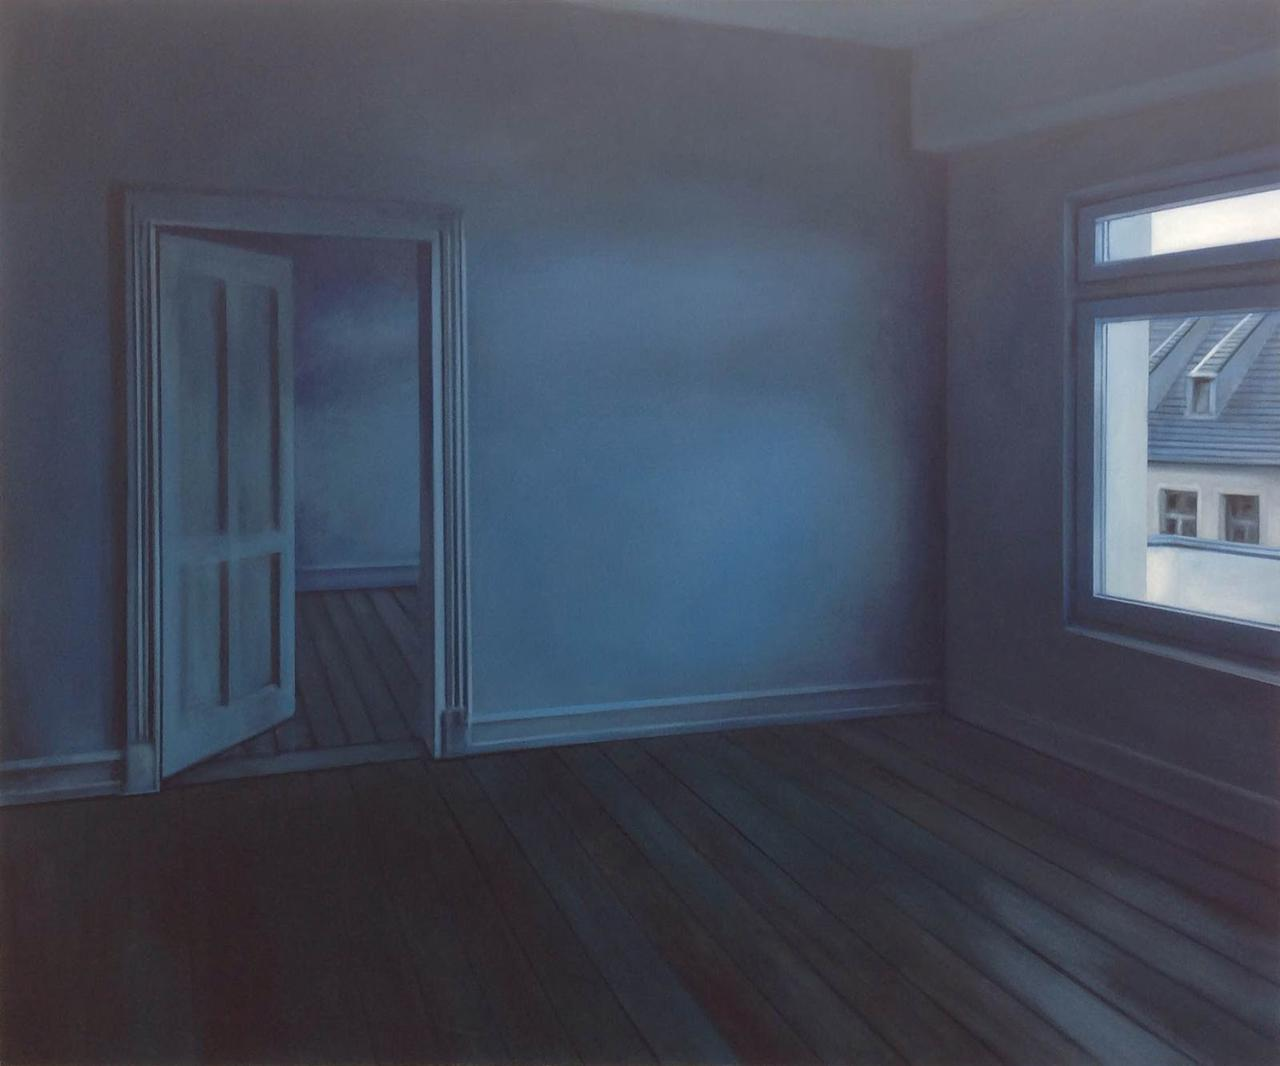 The apartment, oil on canvas, 150 x 180 cm, 2016